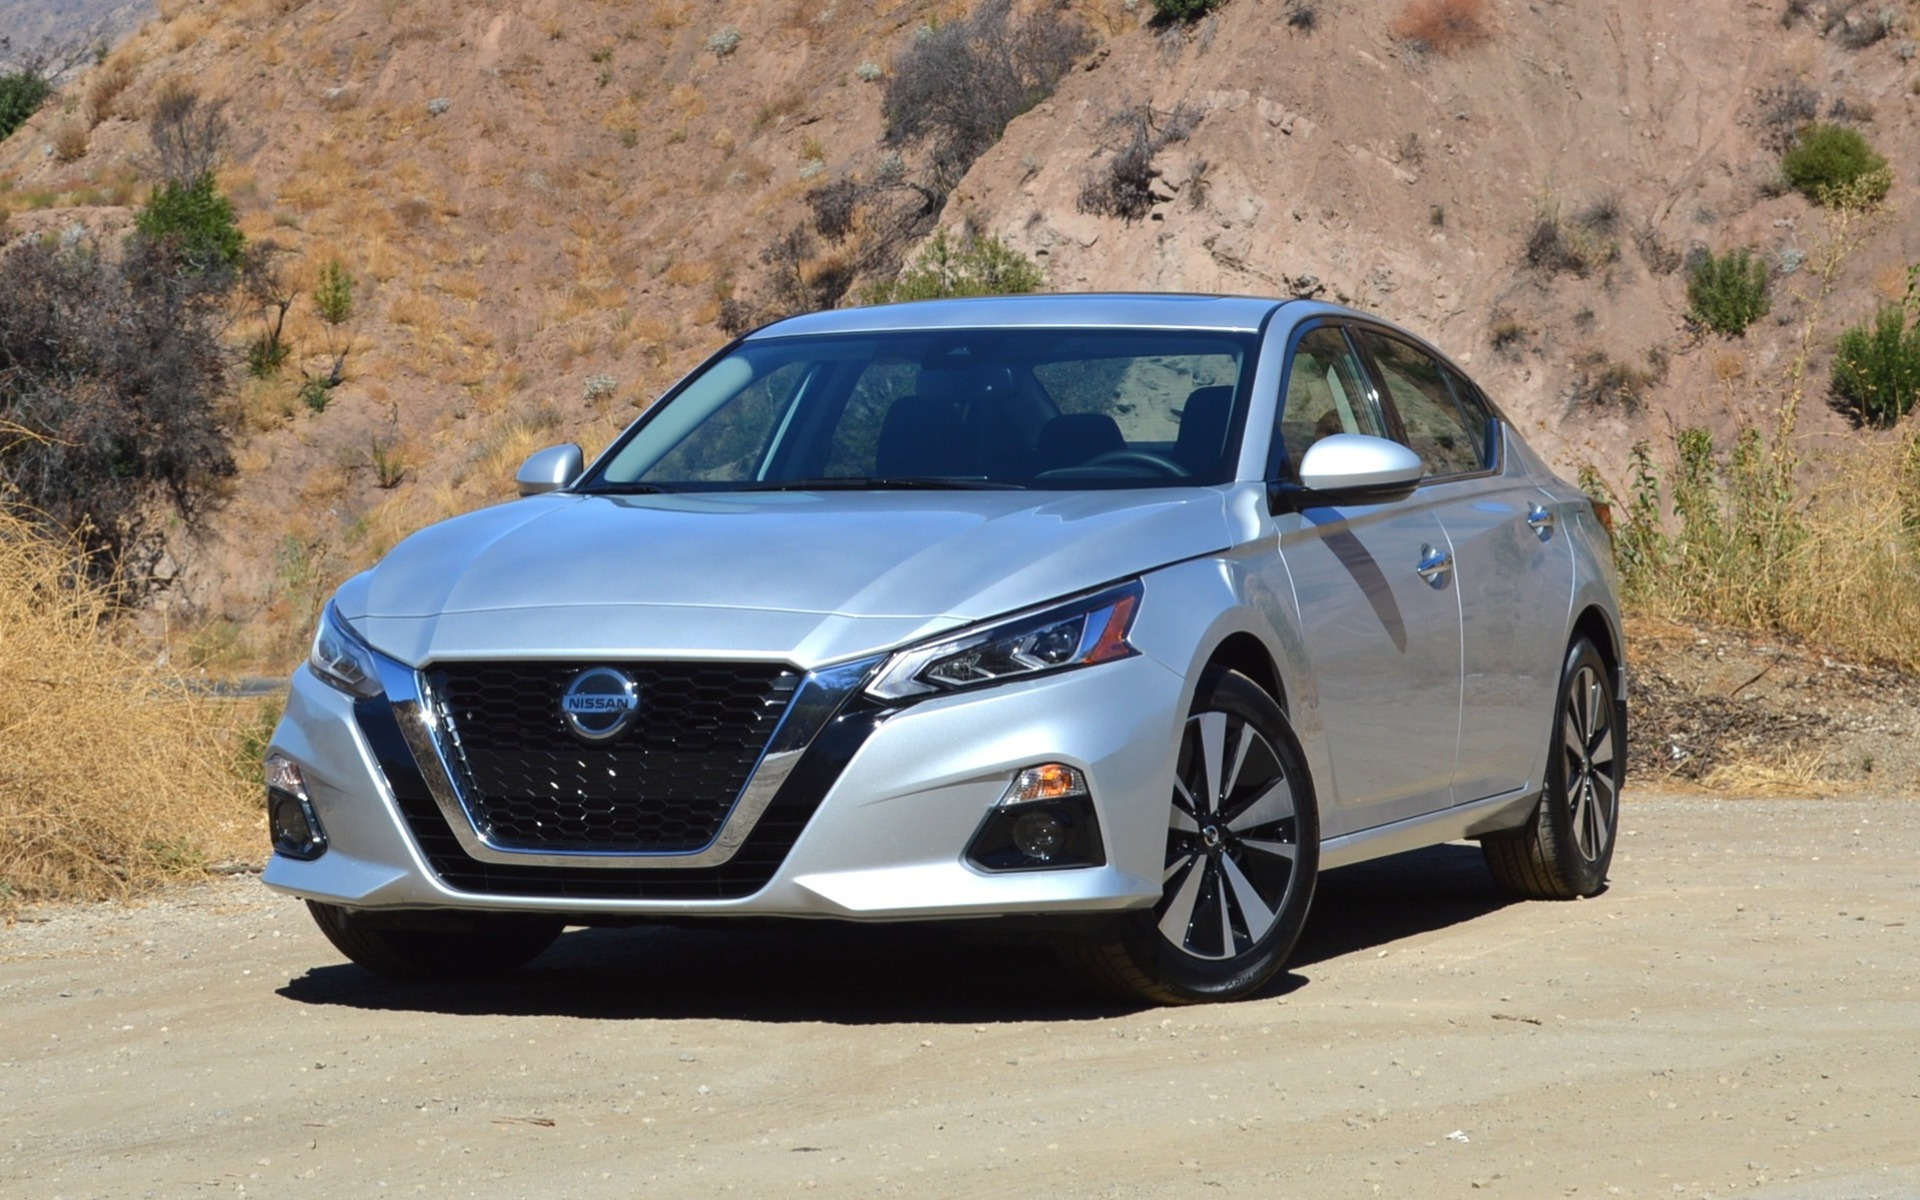 2019 Nissan Altima: Finally Standing Out